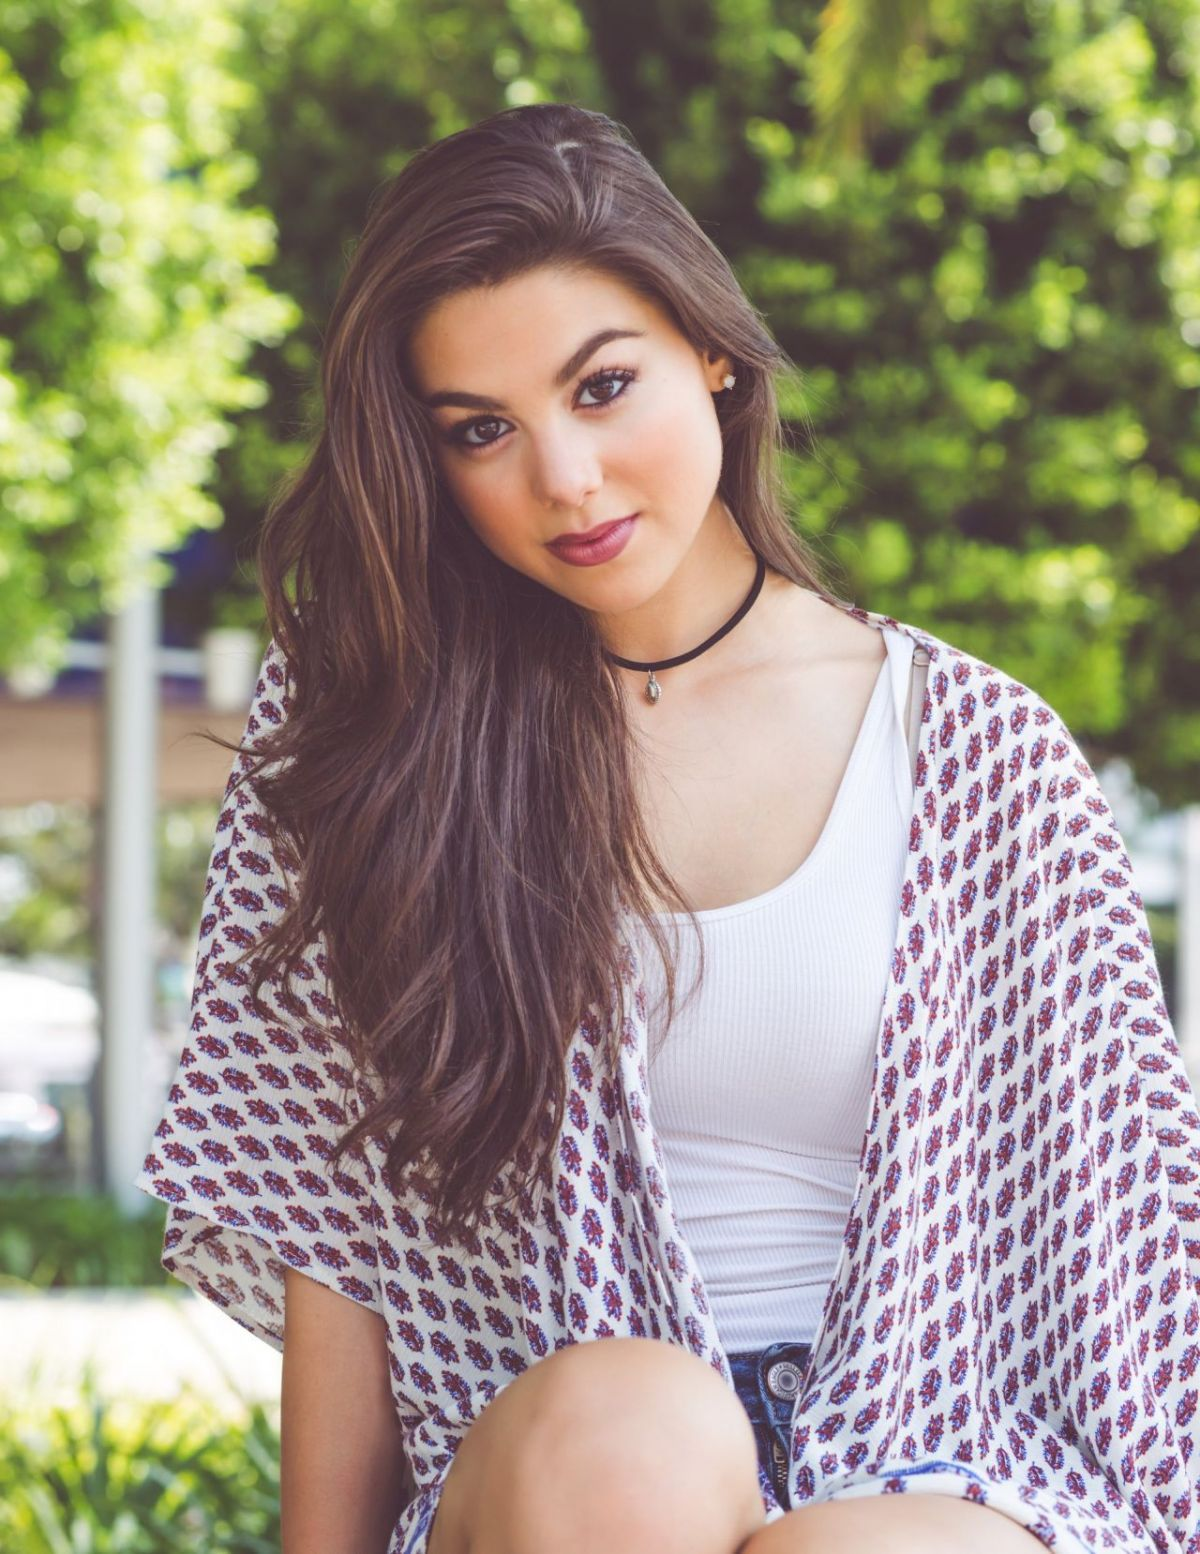 Kira Kosarin PhotoShoot for NKD Magazine September 2016 Issue